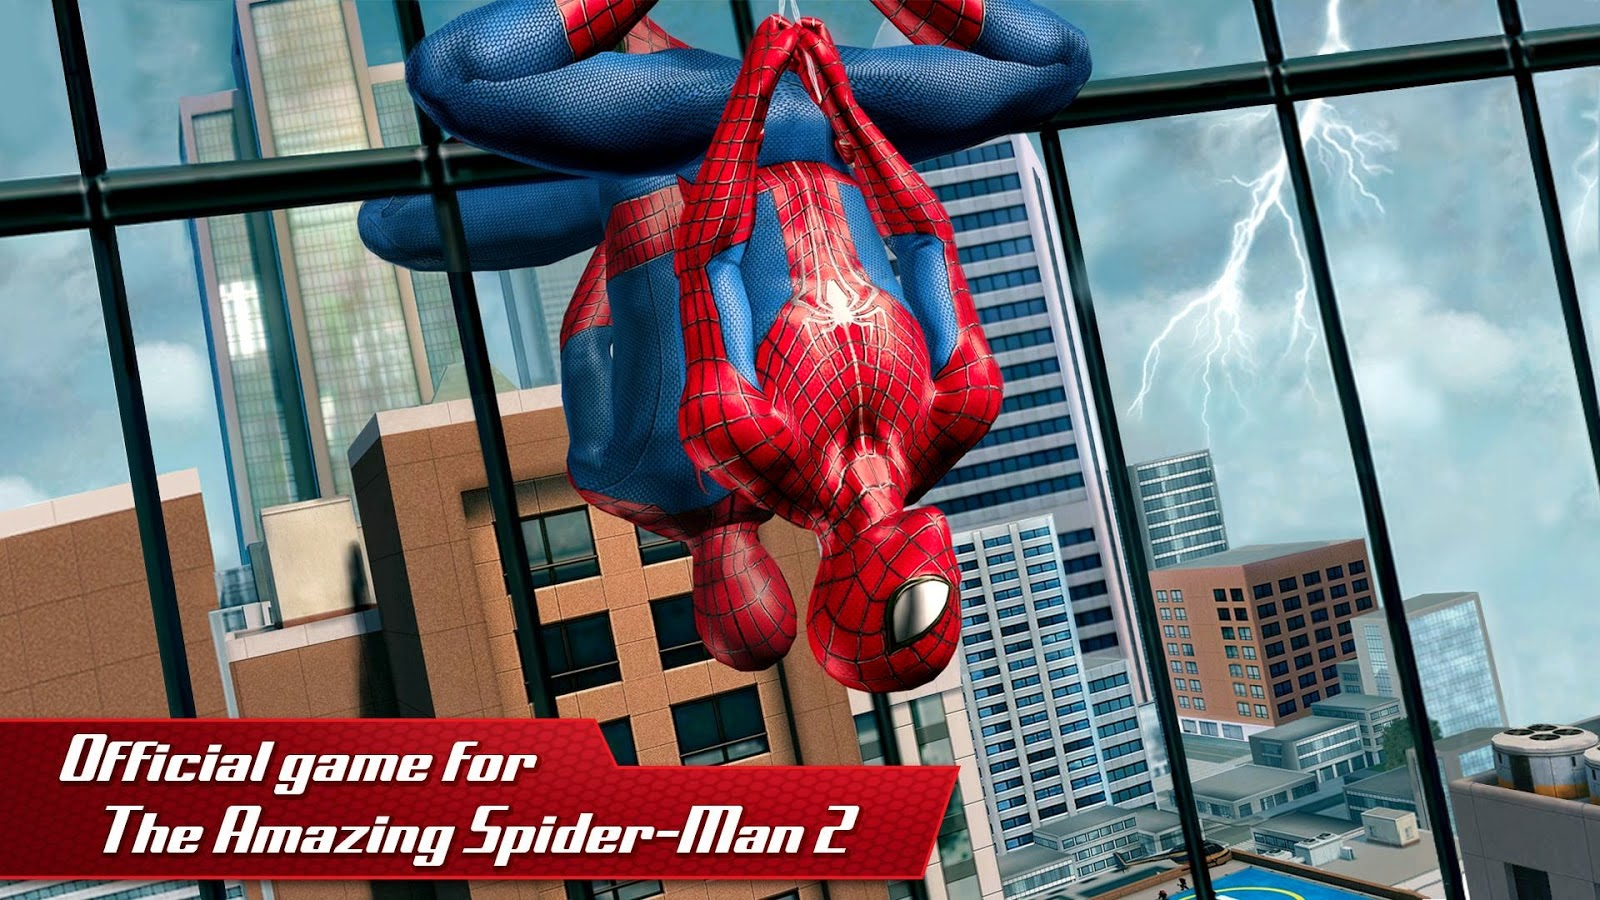 amazing spiderman 2 apps for android,apk spiderman,apps for android,amazing spiderman 2 hd games for android